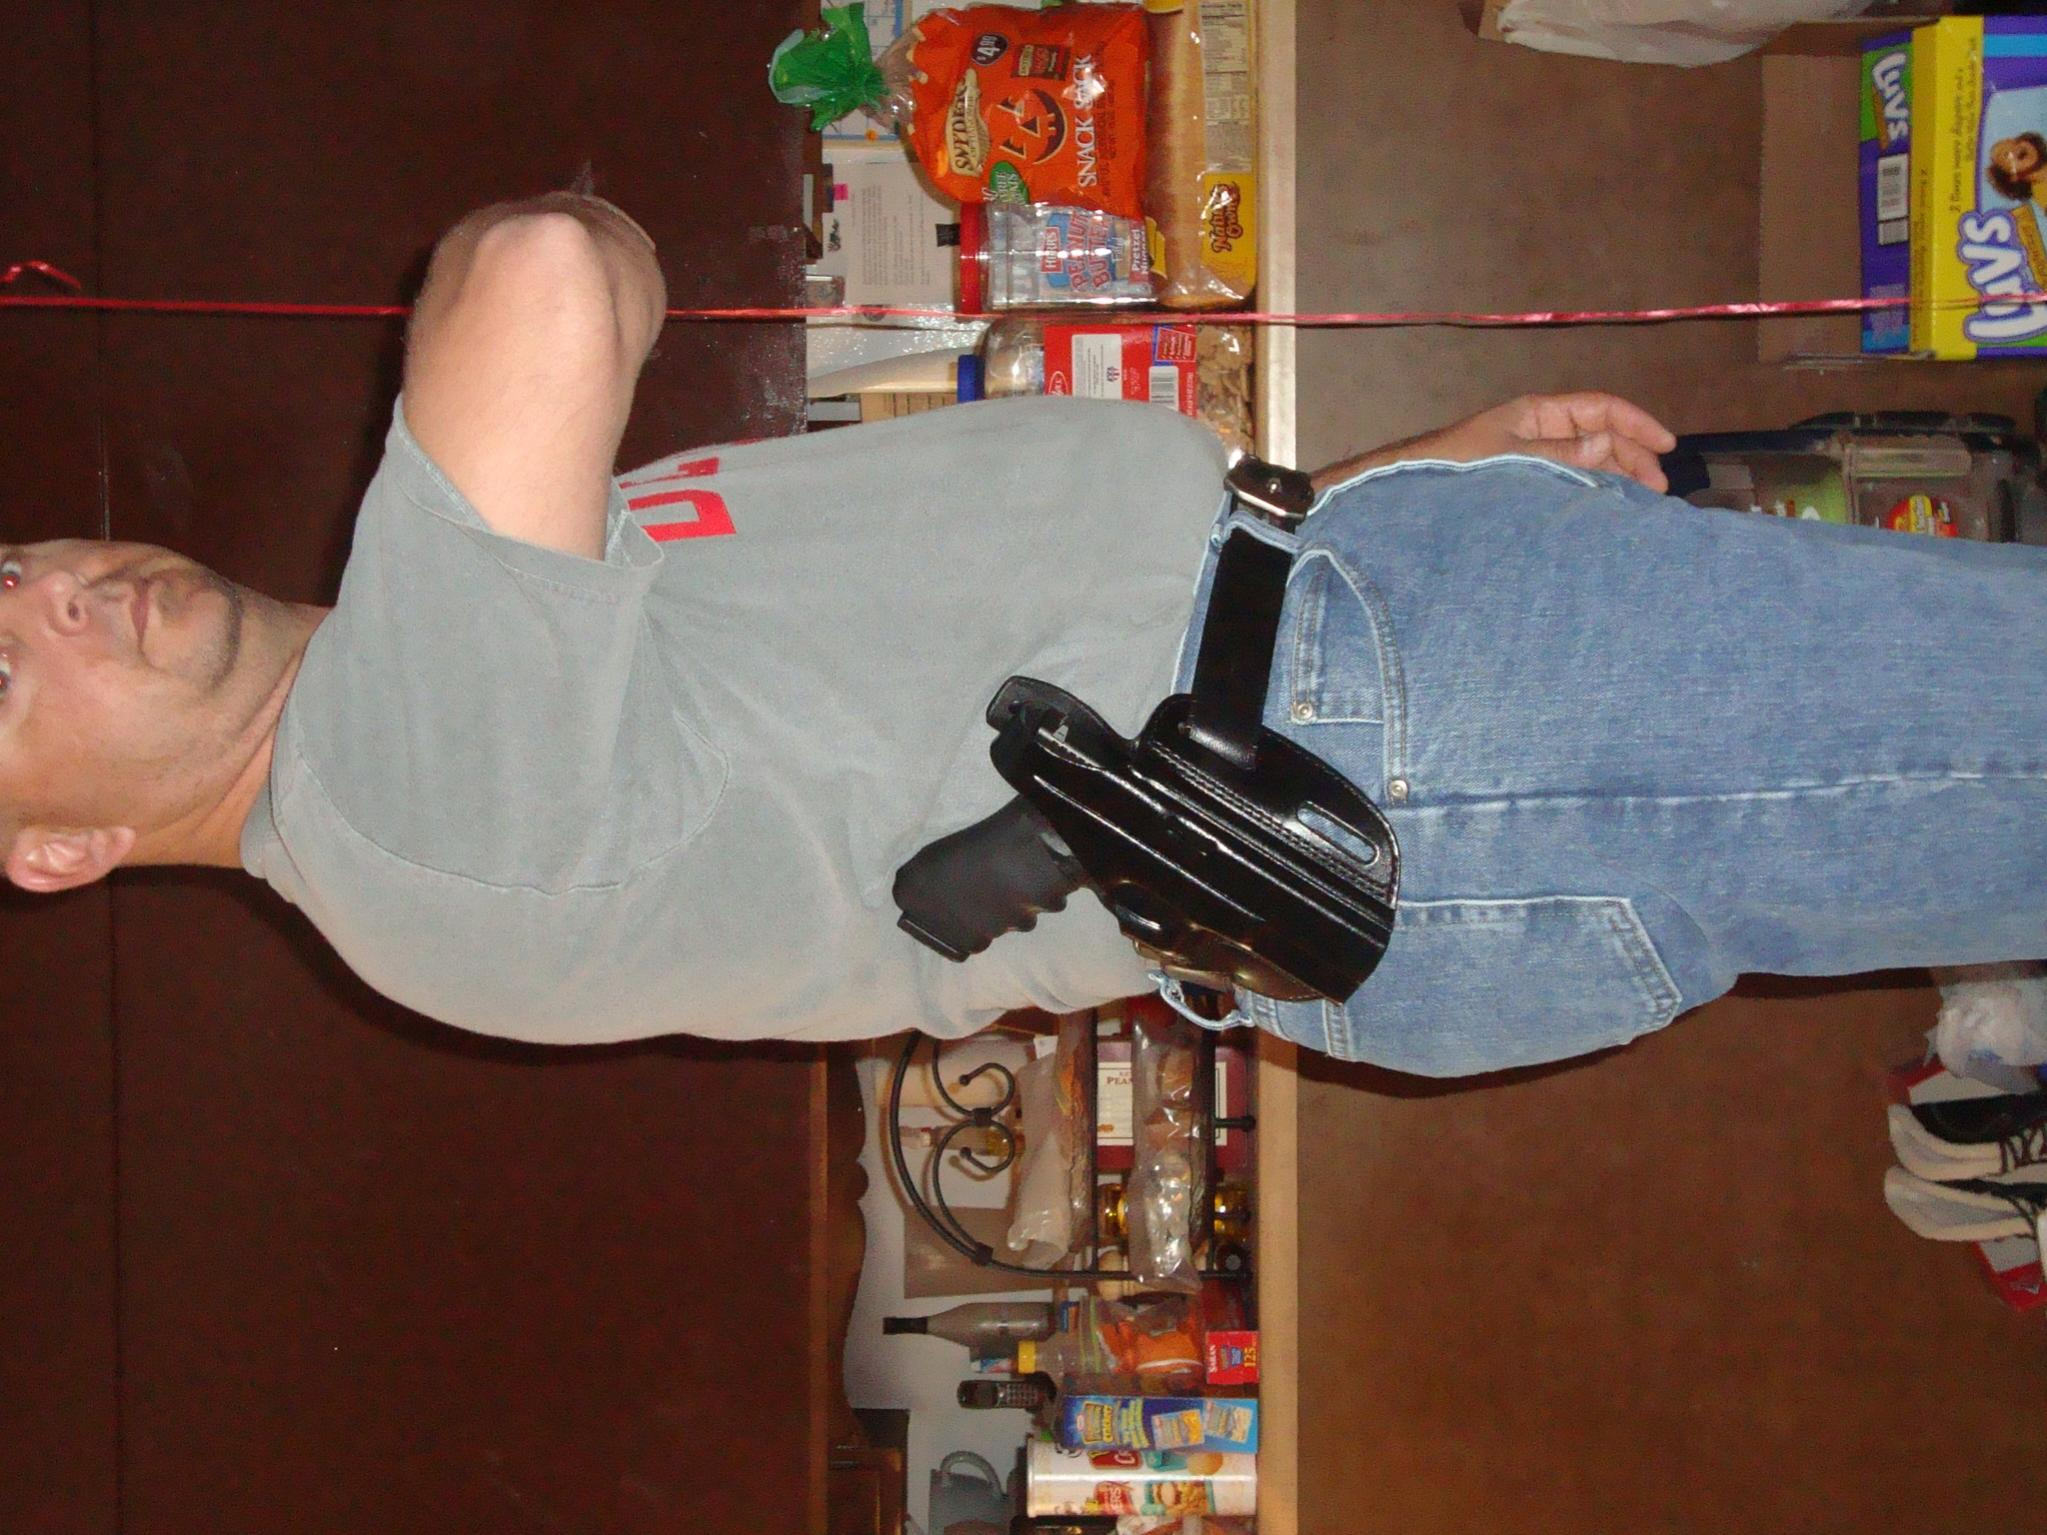 Let's See Your Pic's - How You Carry Concealed.-stuff-010.jpg